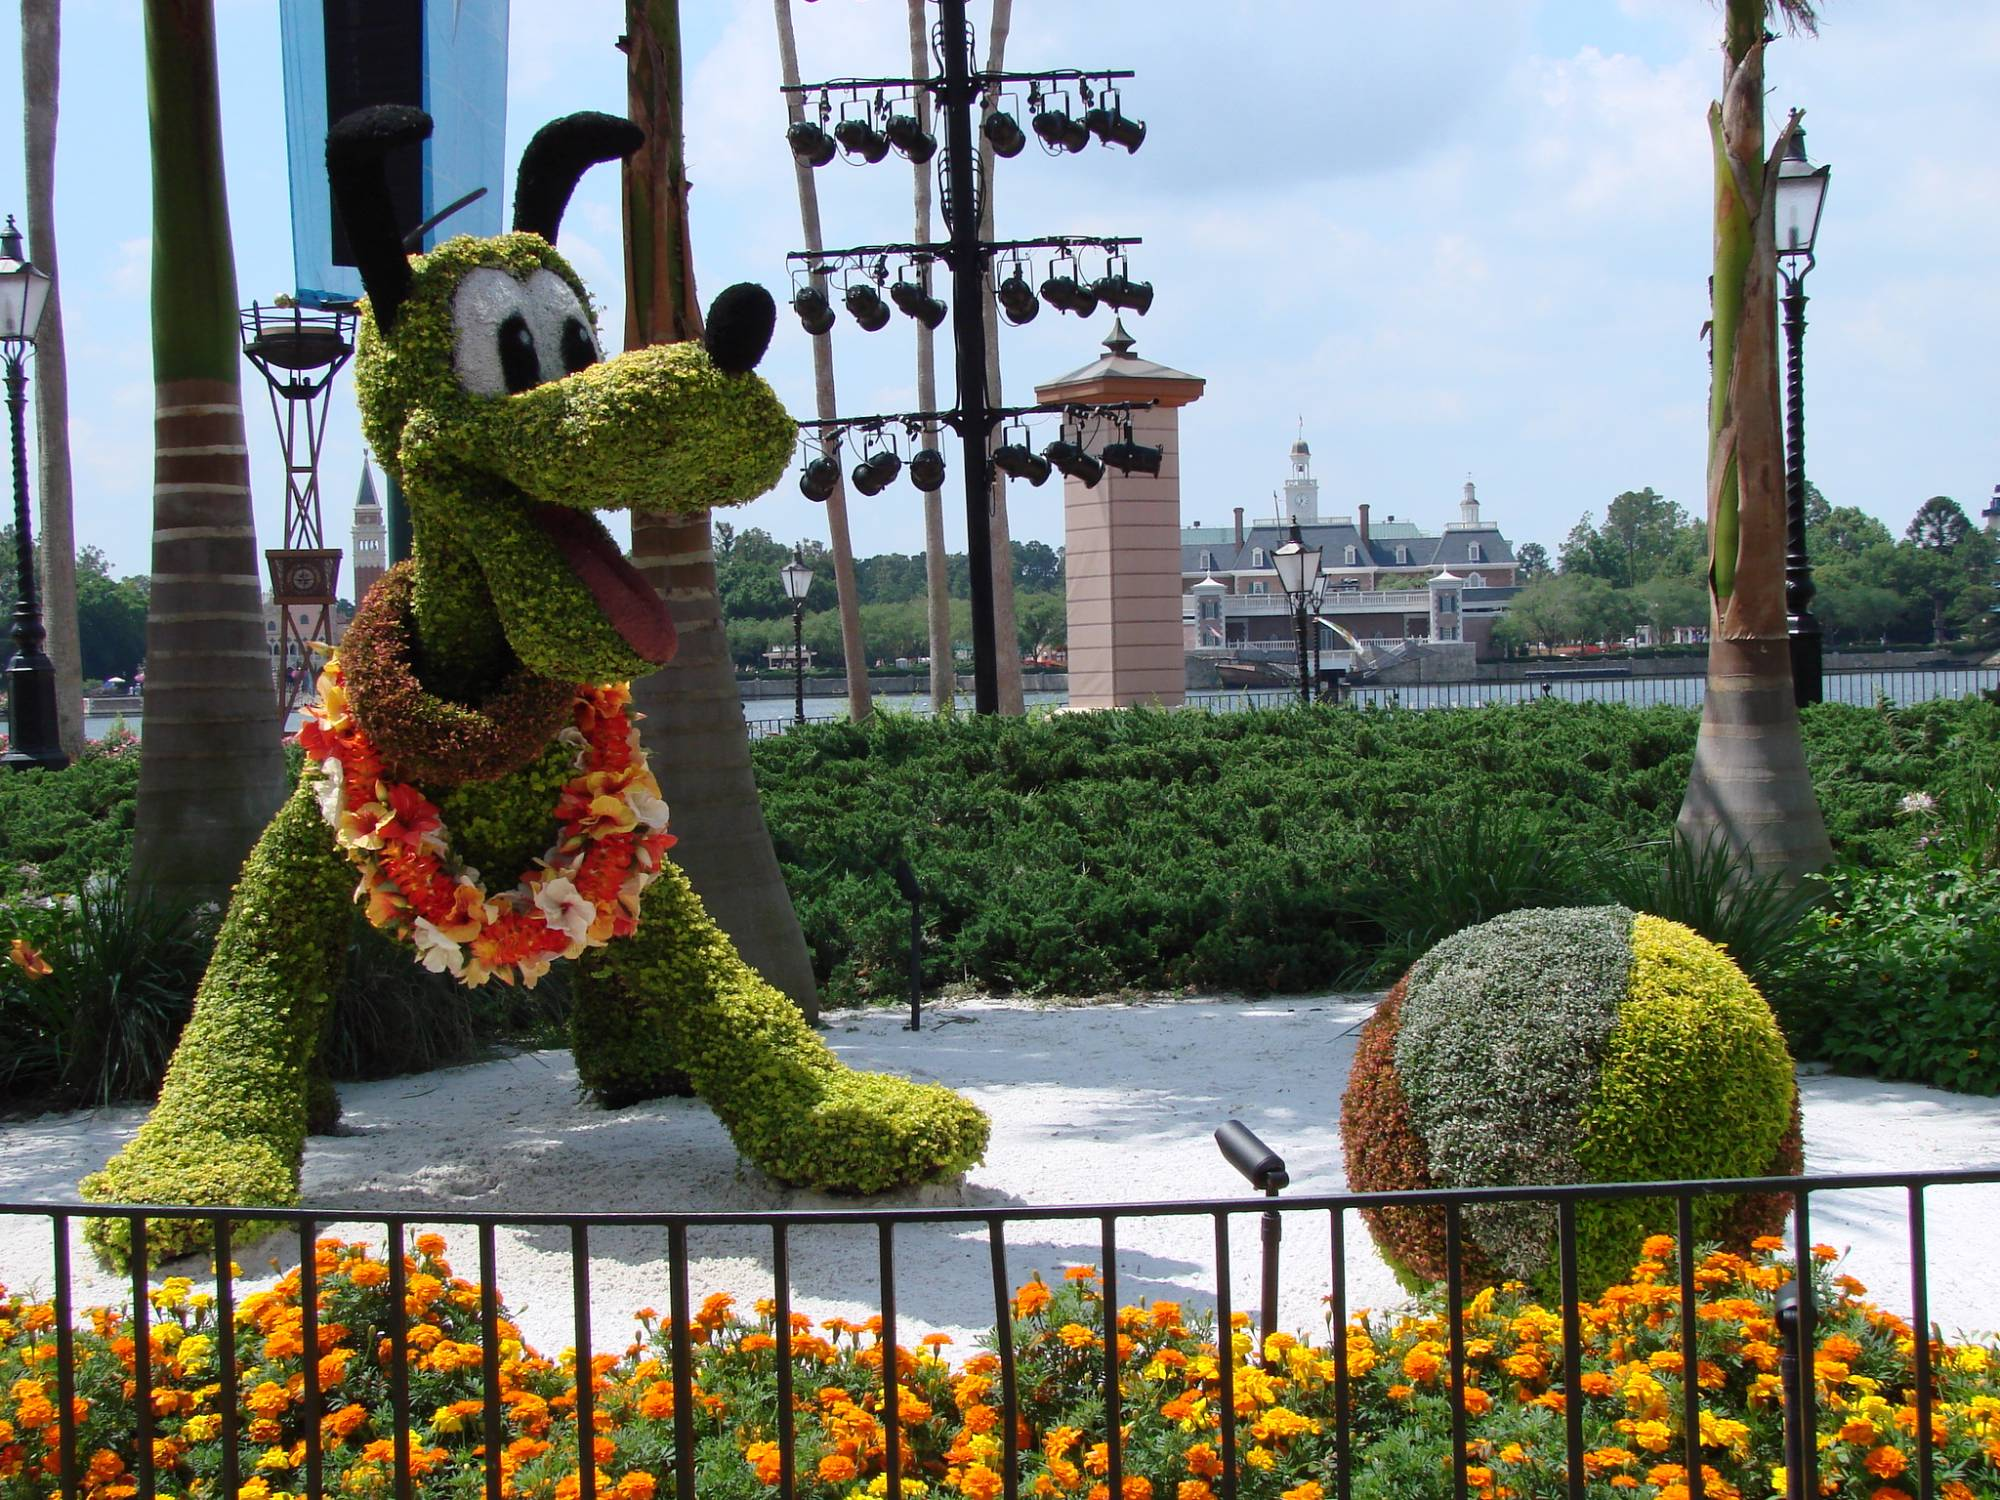 Epcot - Flower and Garden Festival